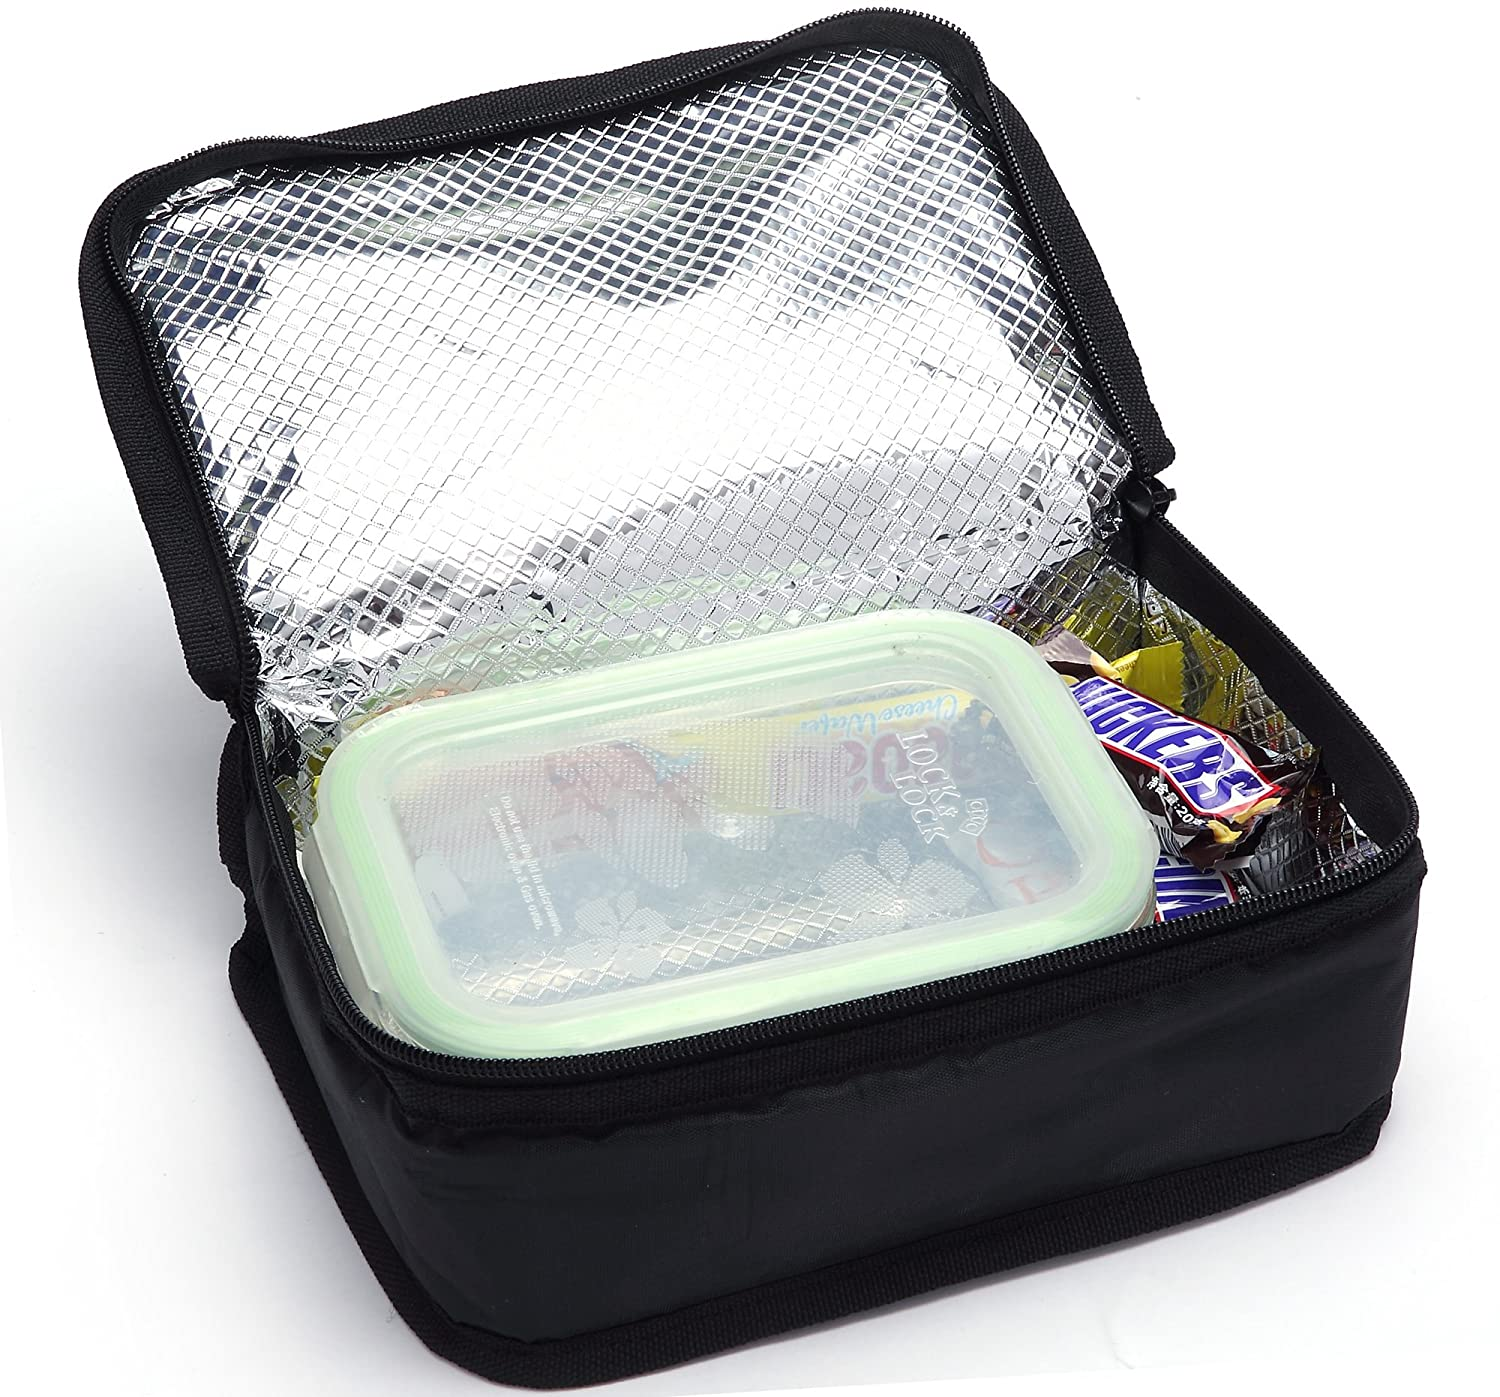 Disney Packing List item, Insulated lunch bag